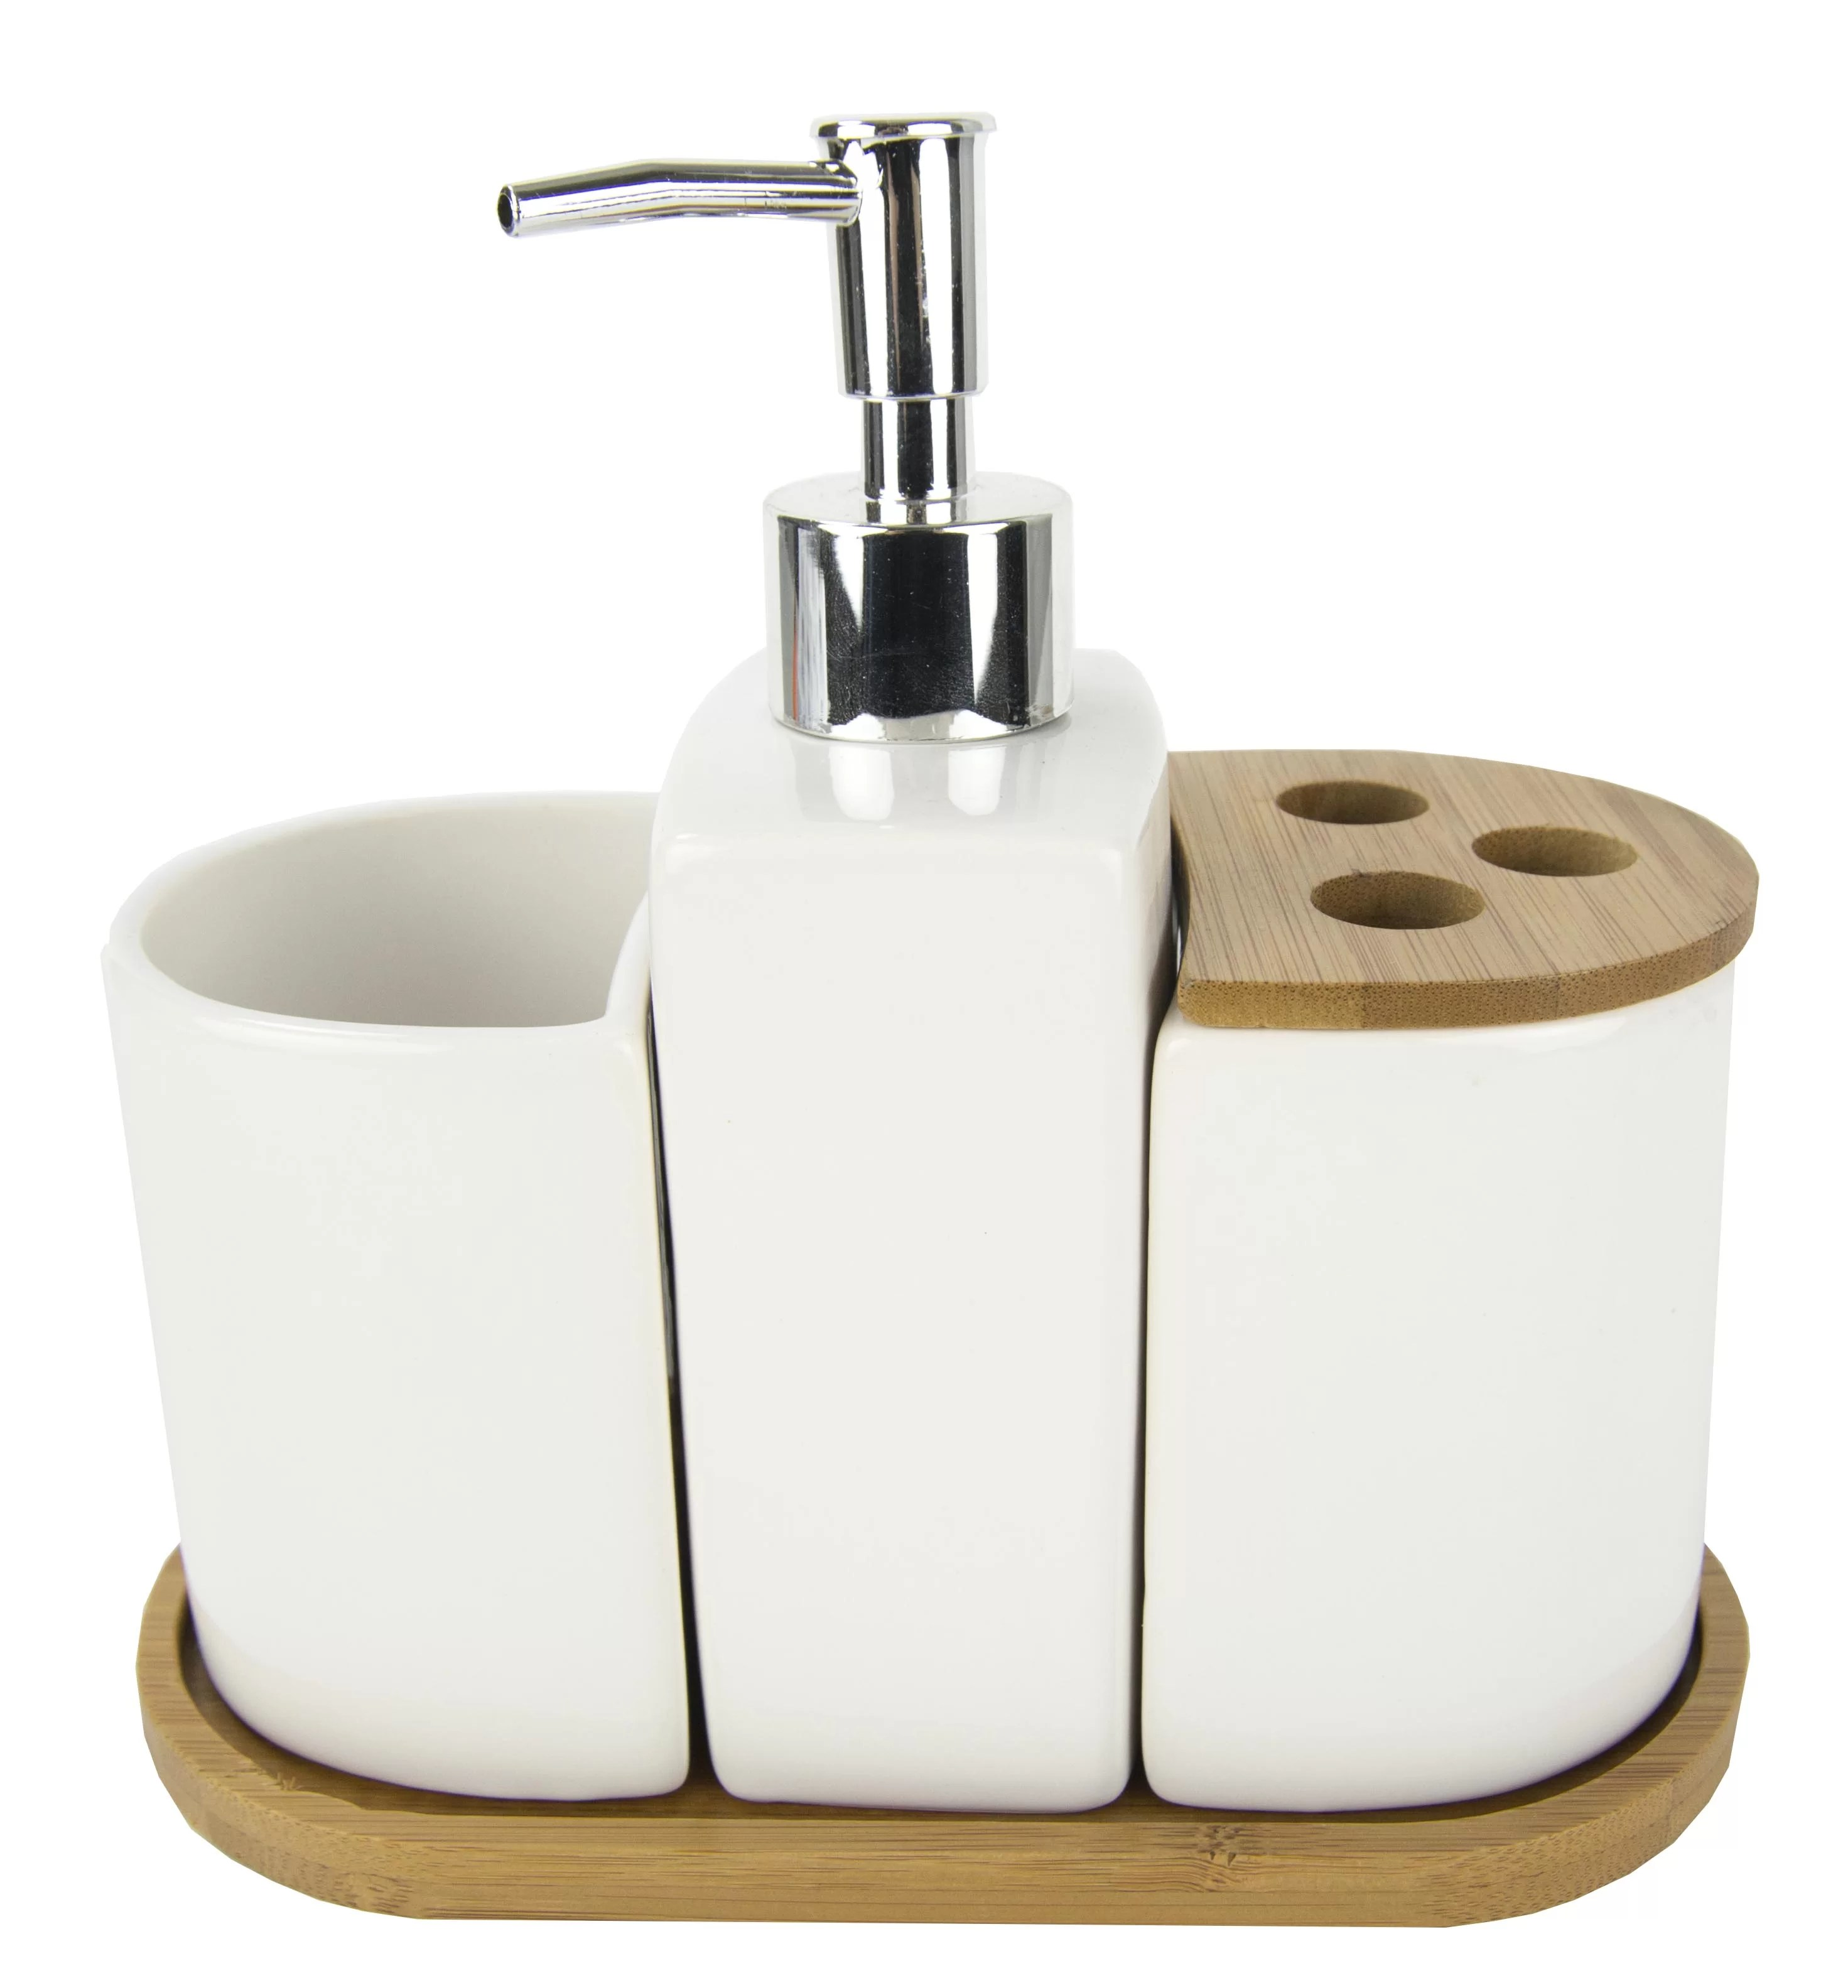 Bathroom Dispenser Set Ceramic With Bamboo Accents 4 Piece Bathroom Accessory Set